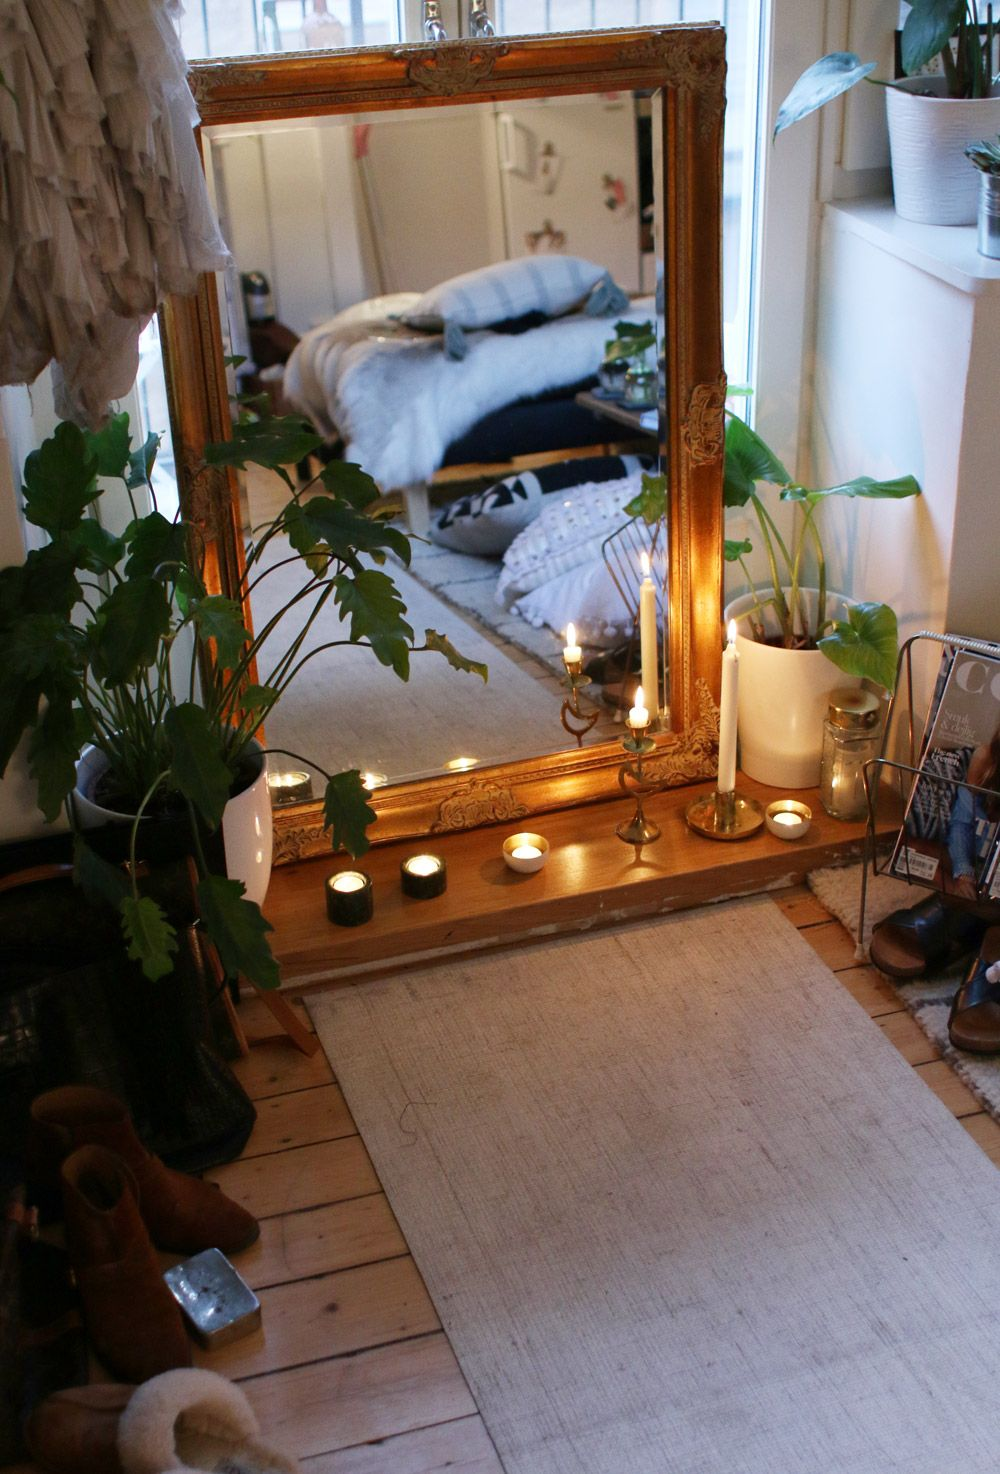 Design You Room: Meditation Space In Bedroom